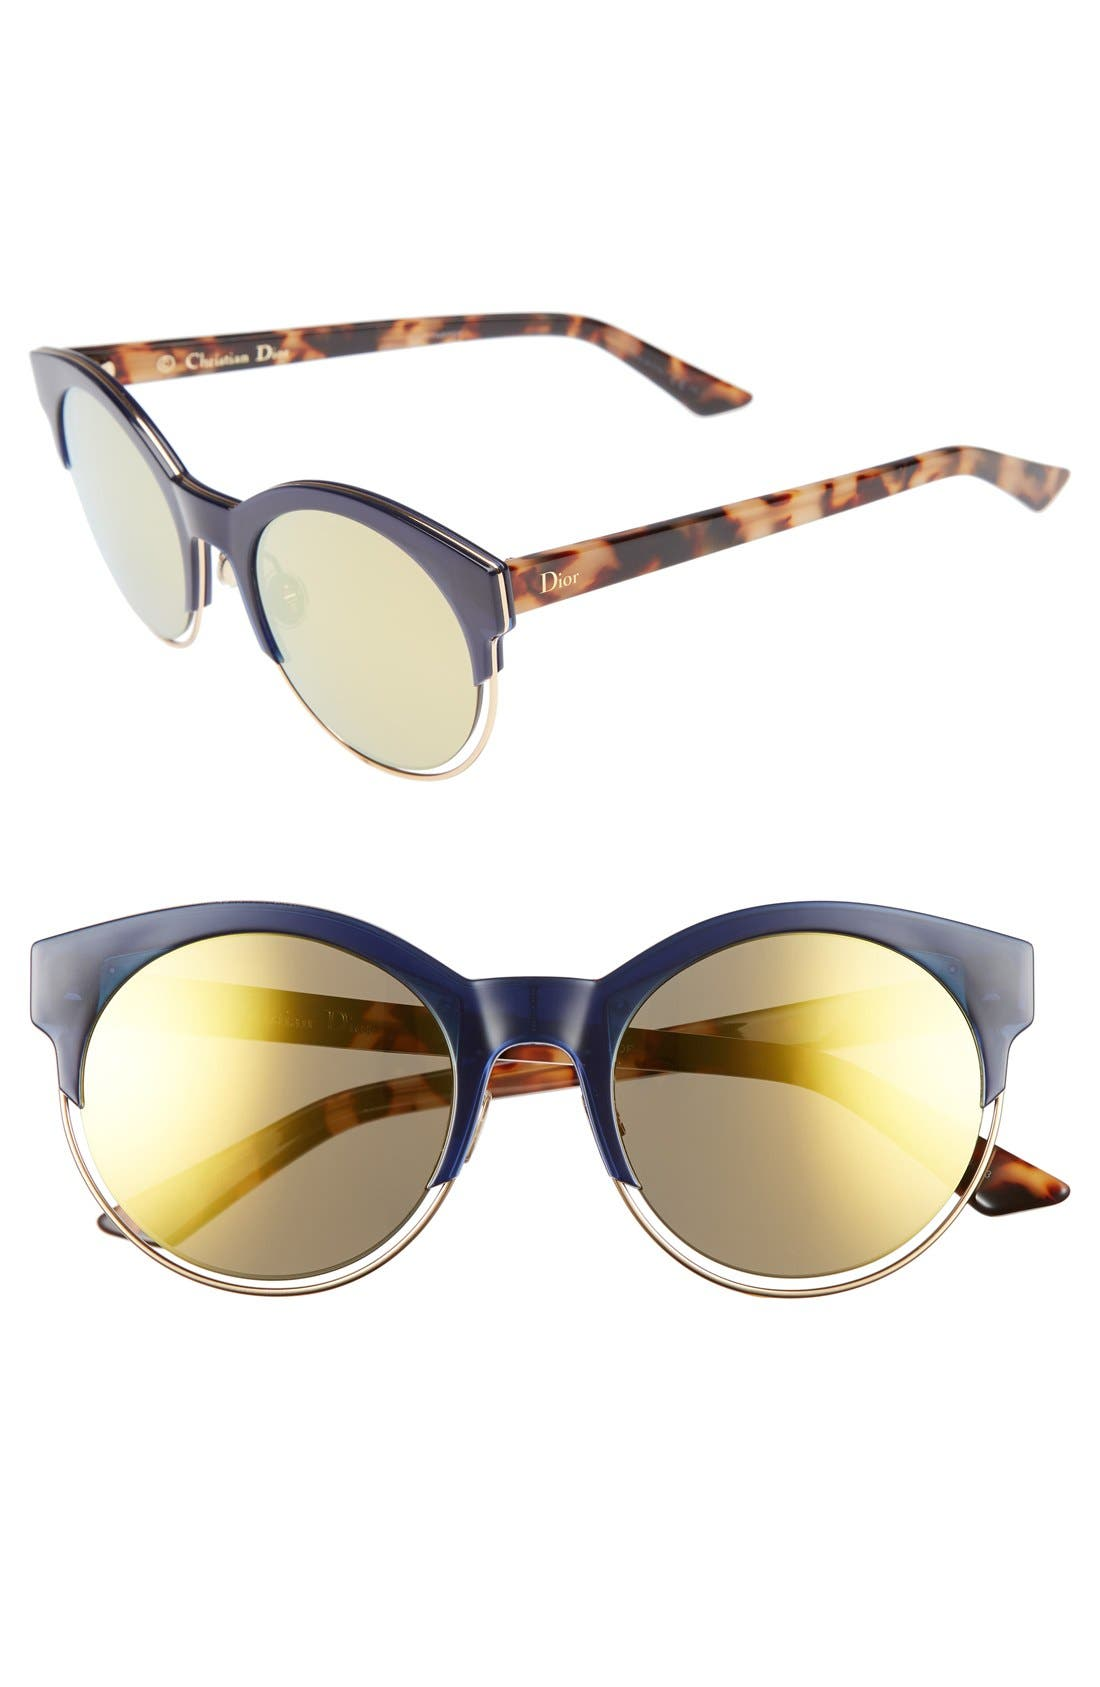 Siderall 1 53mm Round Sunglasses,                             Main thumbnail 6, color,